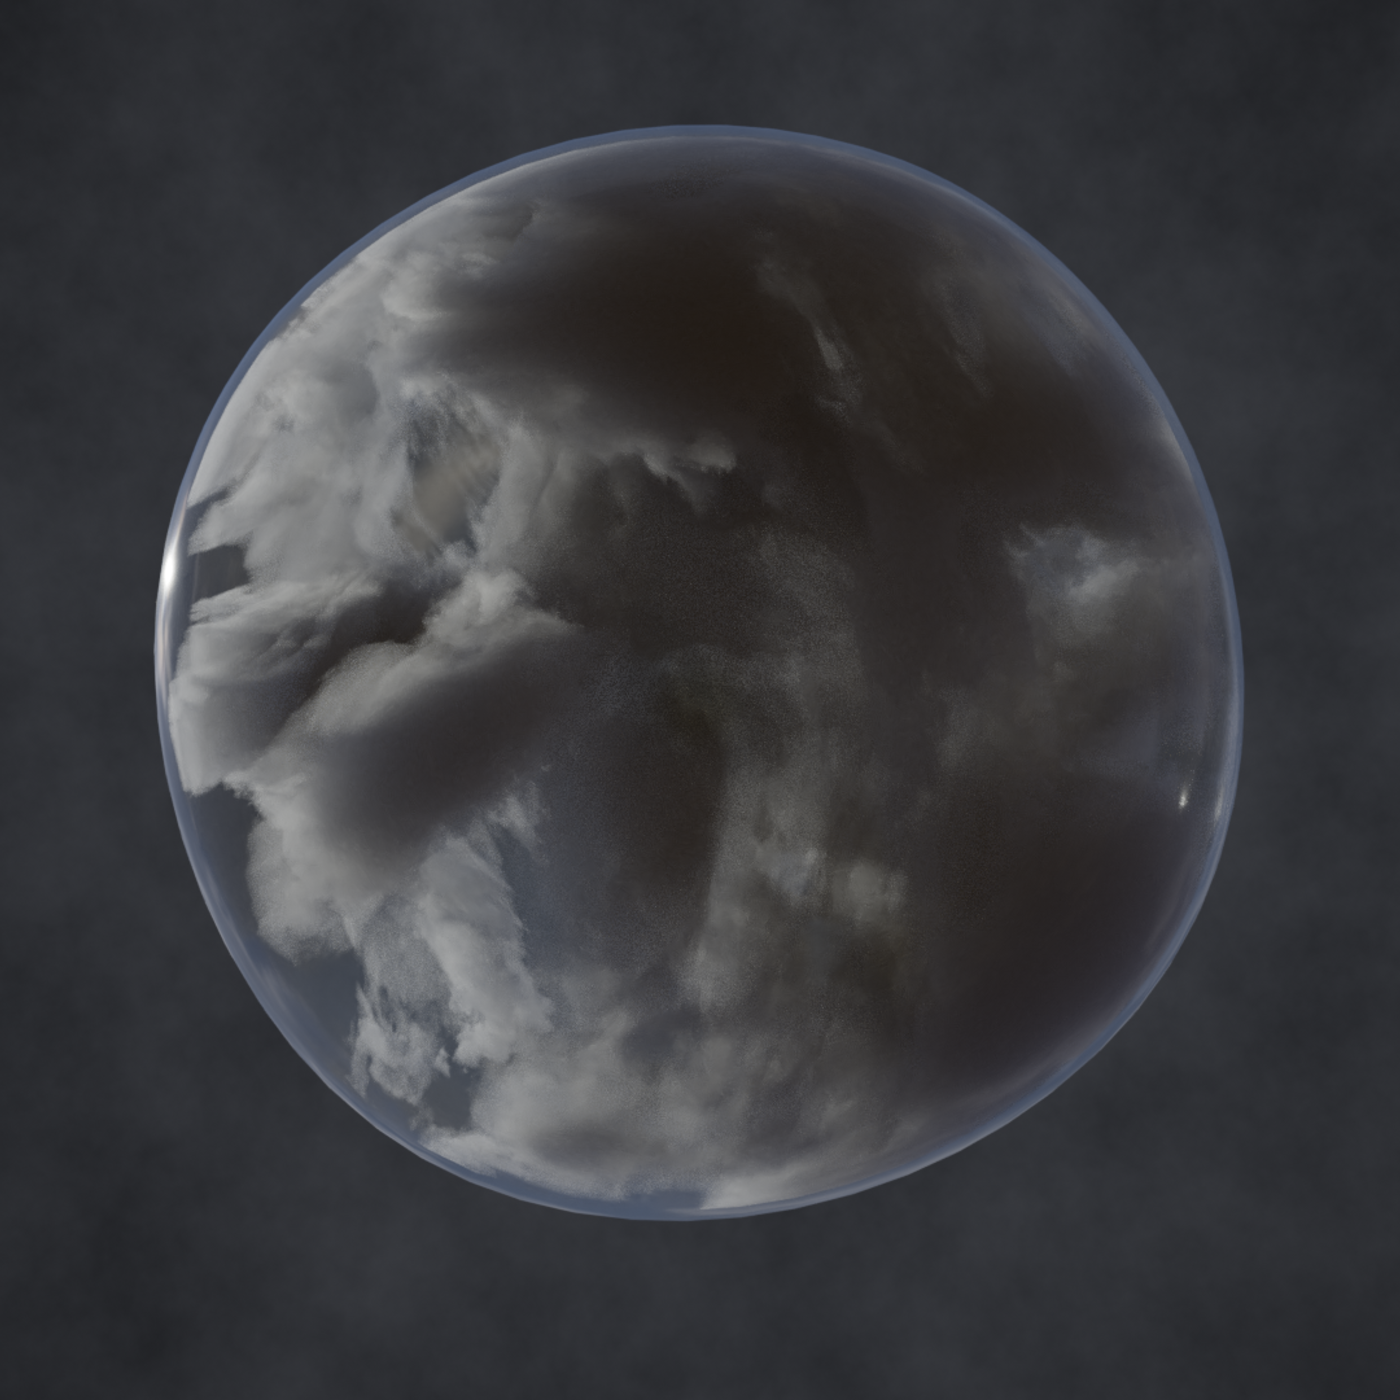 Clouds in the bubble